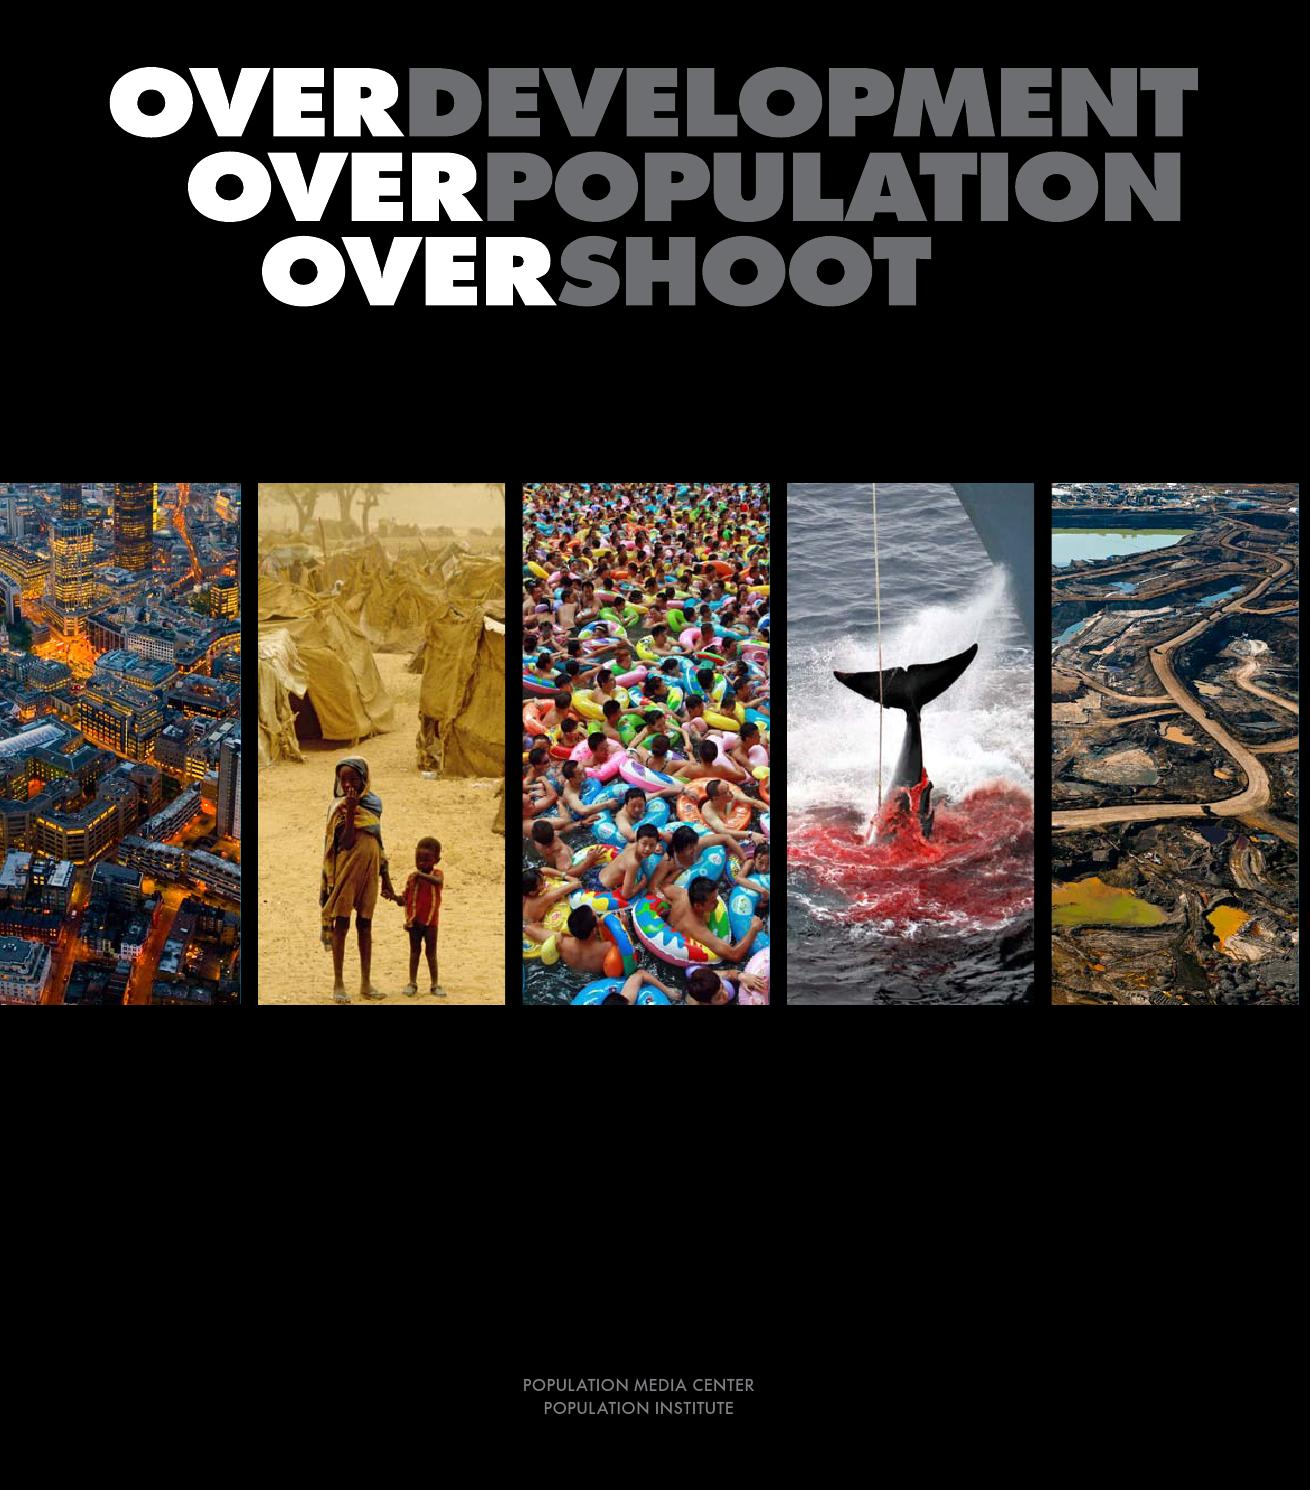 over development over population over shoot in pictures are we living in hell